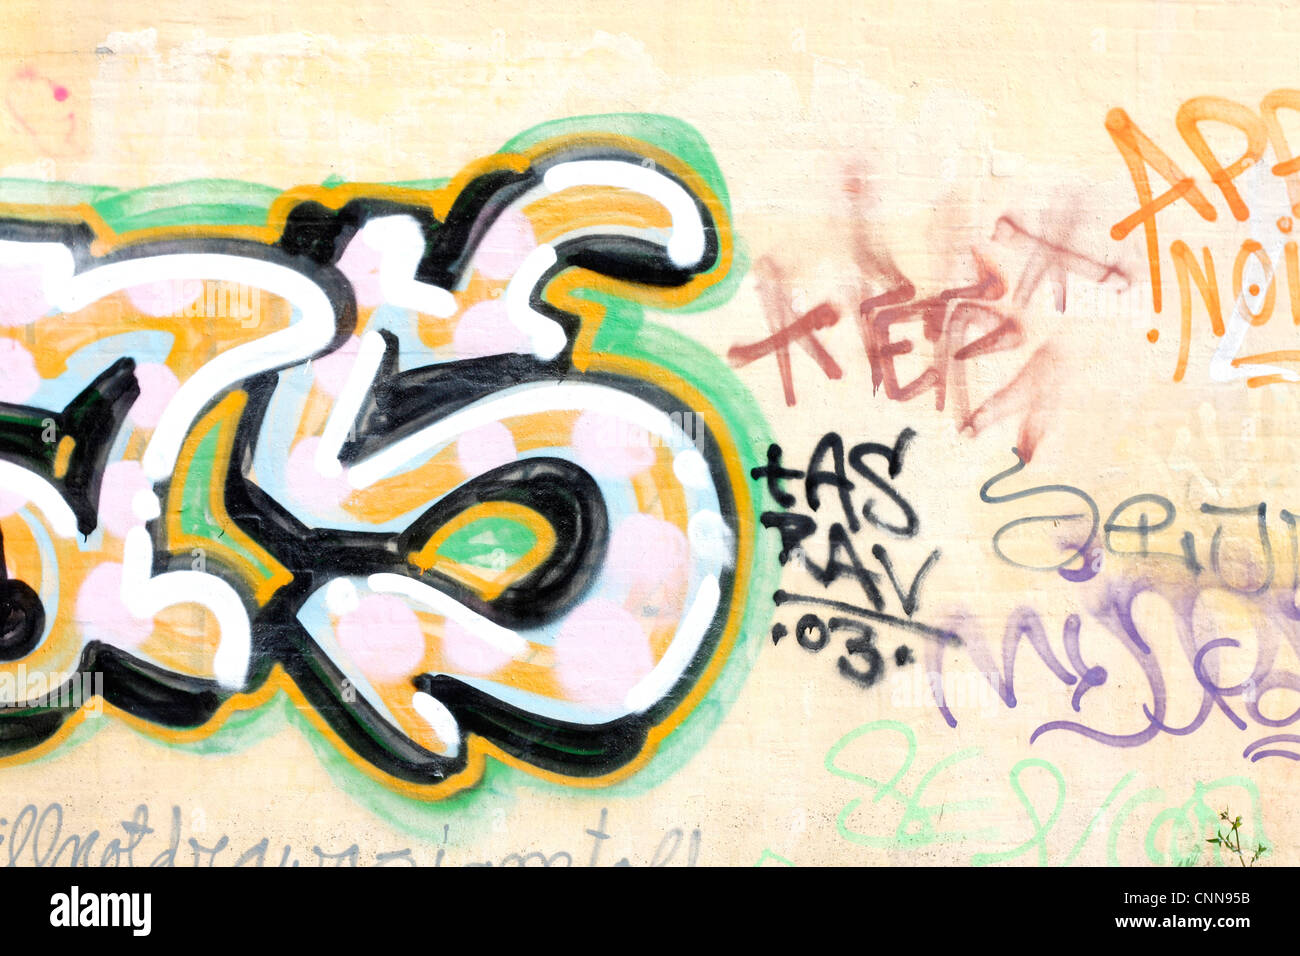 Vandalism on a wall - Stock Image